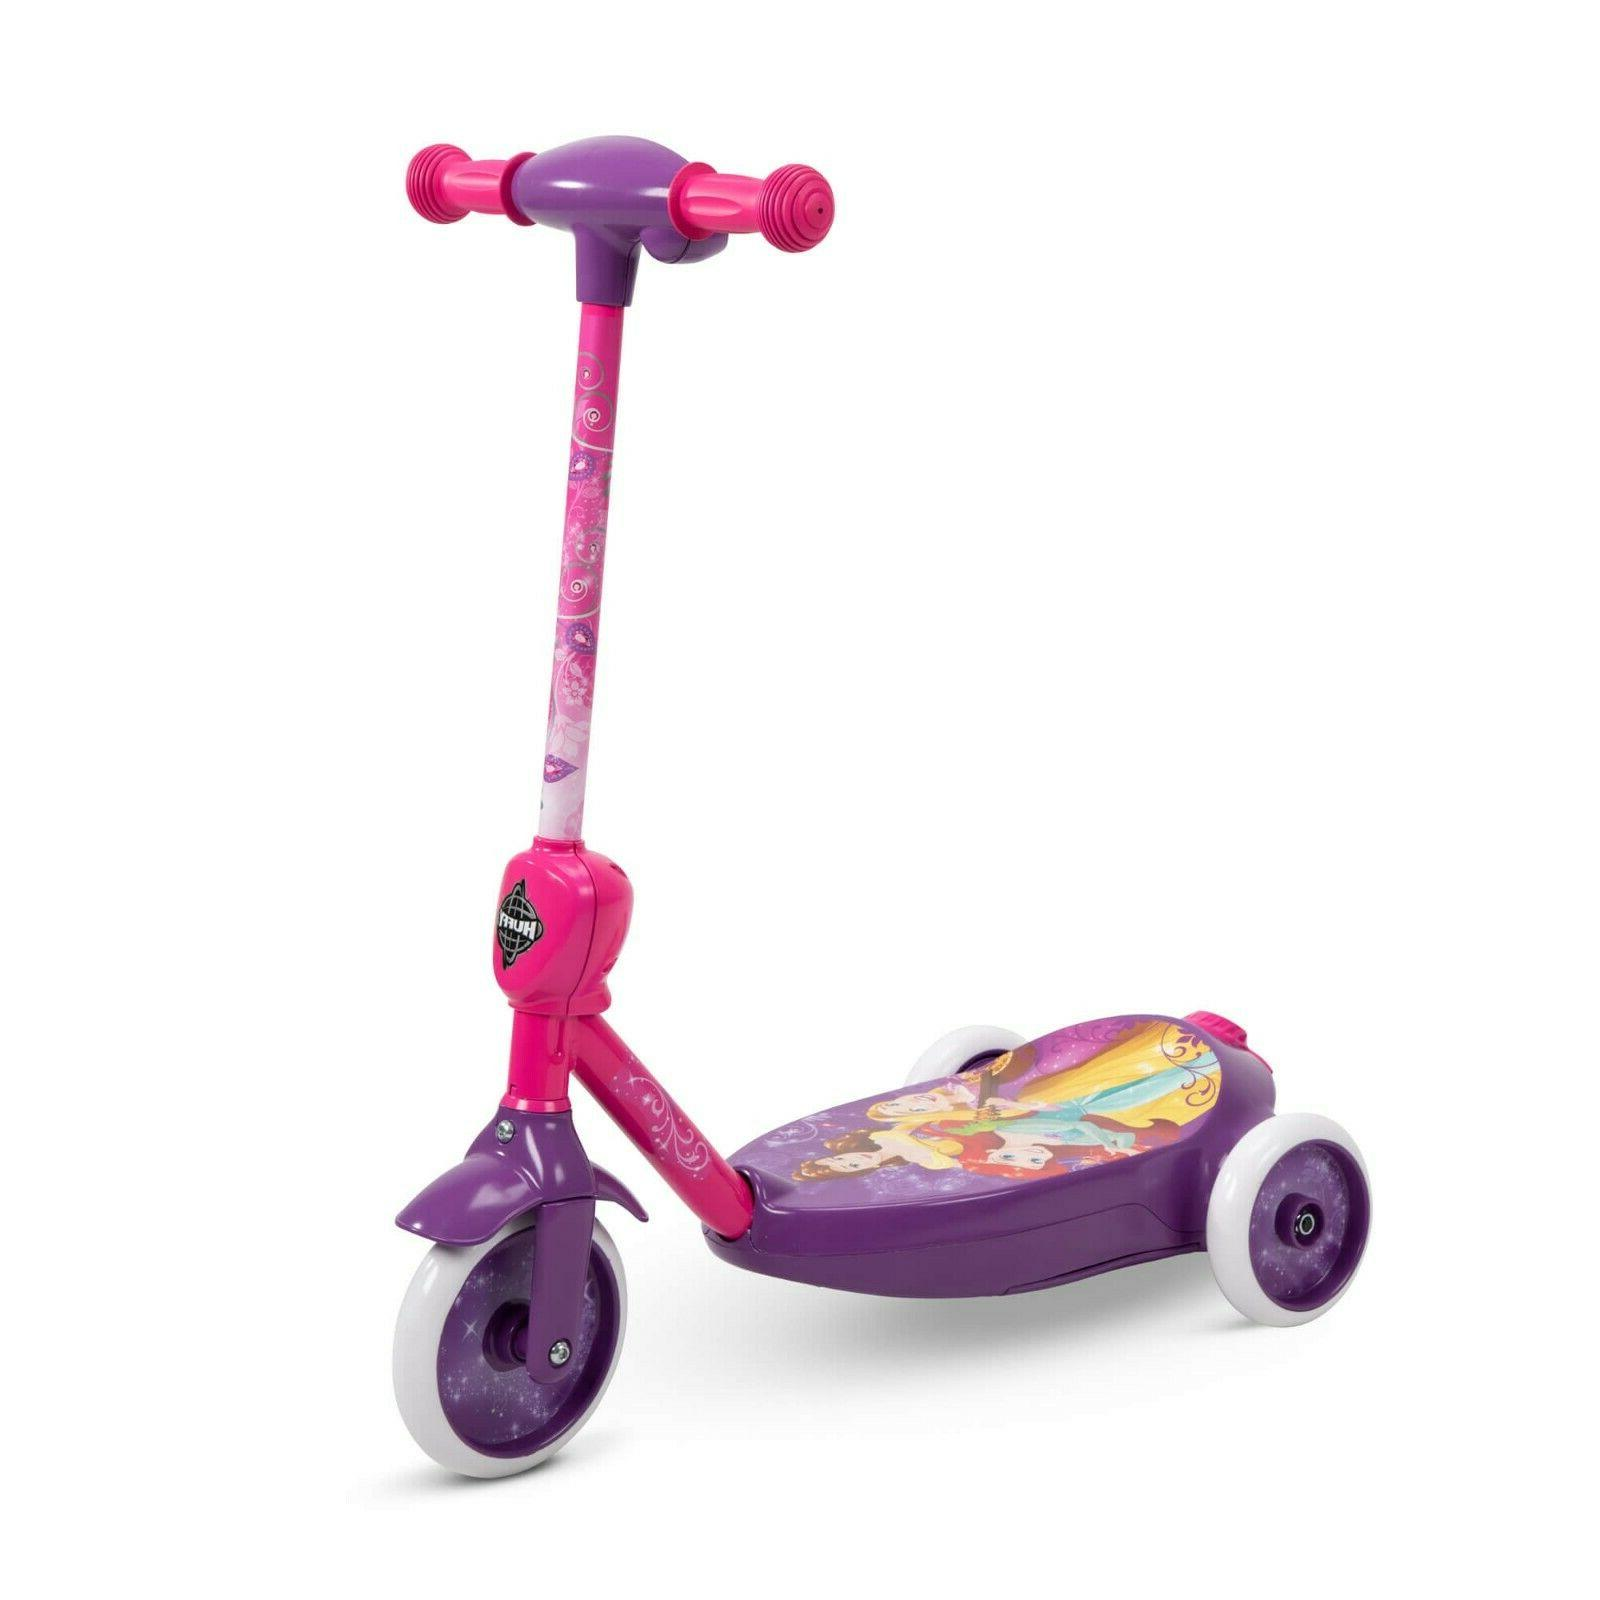 3-Wheel Ride-On Scooter Non-Slip Deck Fun Play Pink